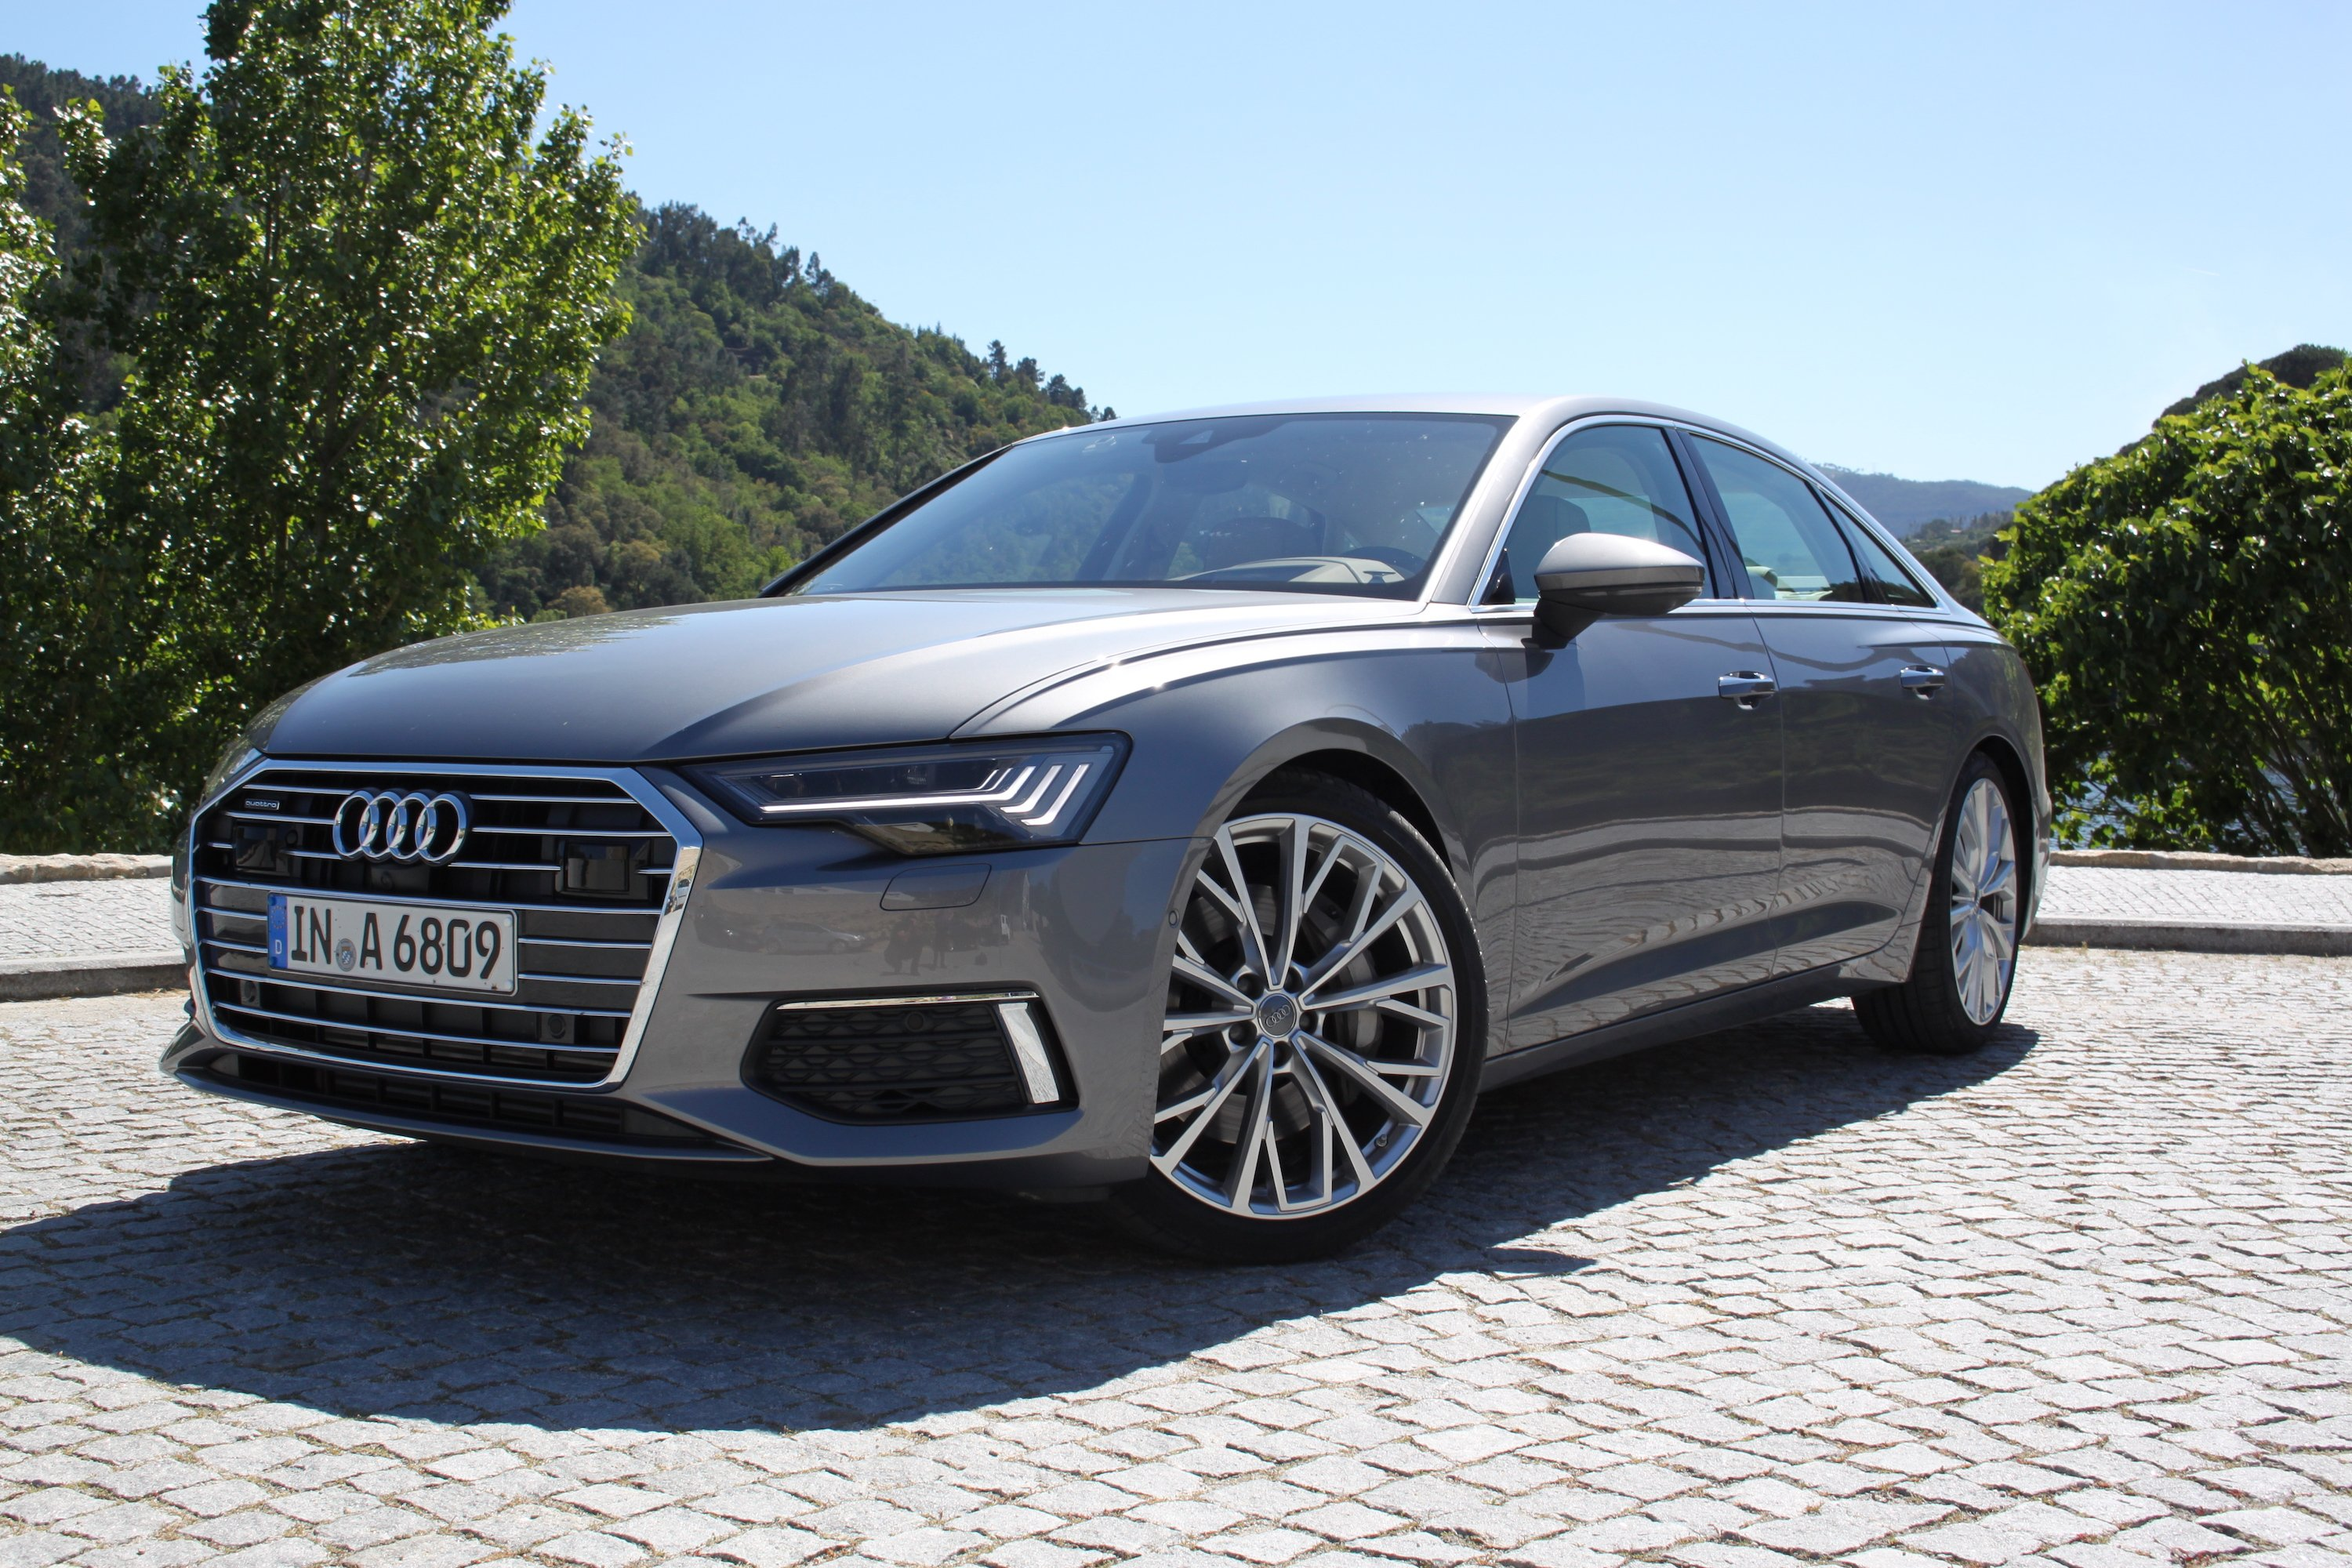 2019 audi a6 review. Black Bedroom Furniture Sets. Home Design Ideas